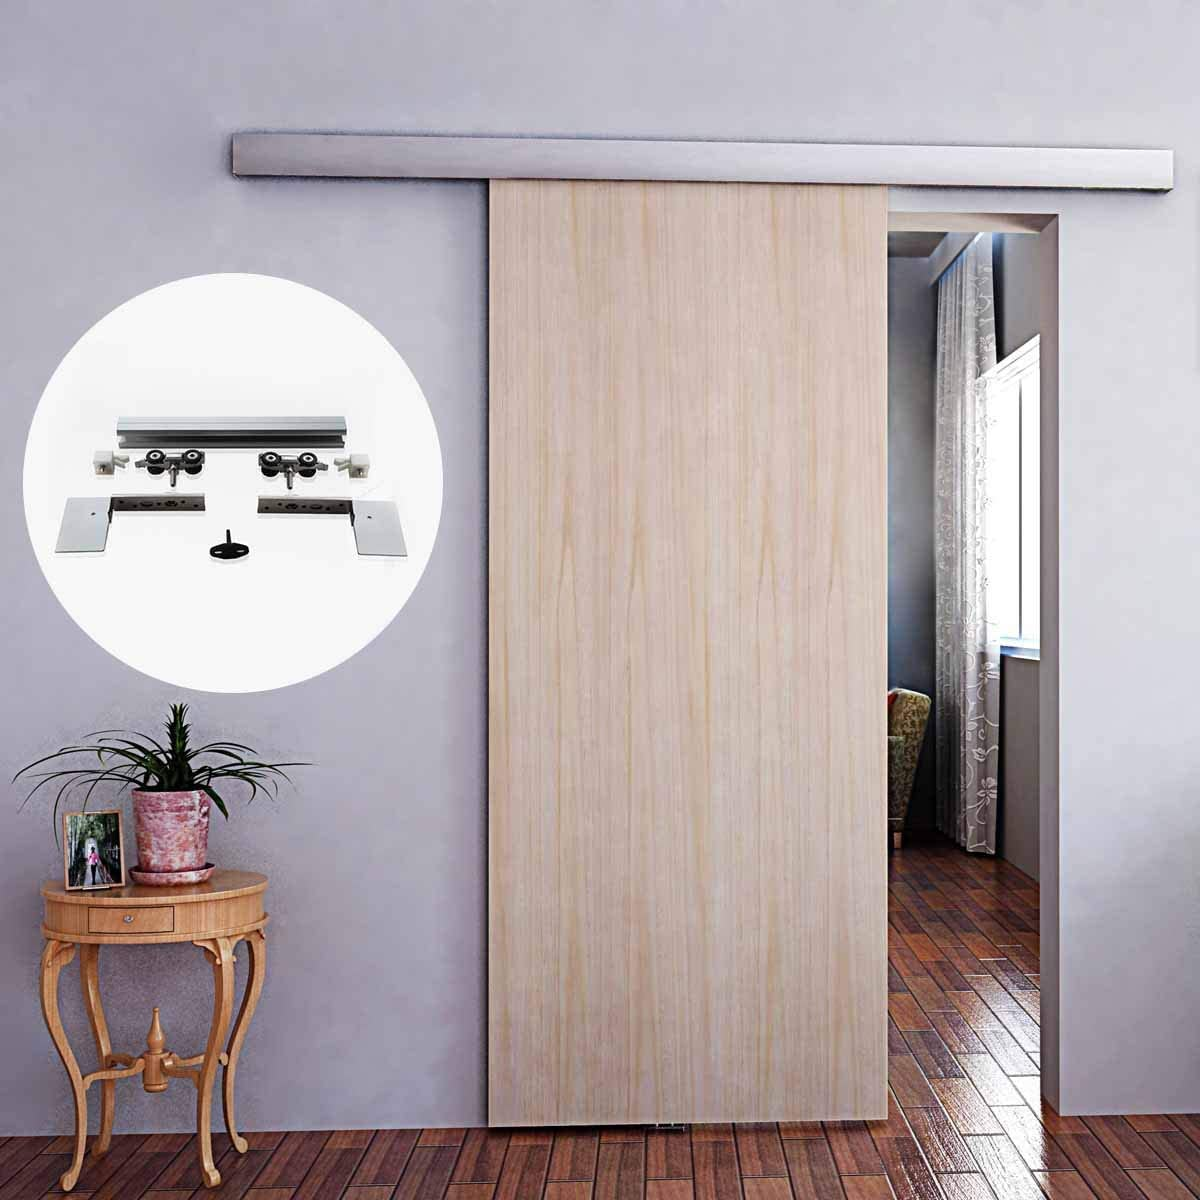 6.6FT Aluminium Alloy Brushed Hidden Track Sliding Wood barn Door Hardware kit(A10-200cm): Amazon.es: Bricolaje y herramientas